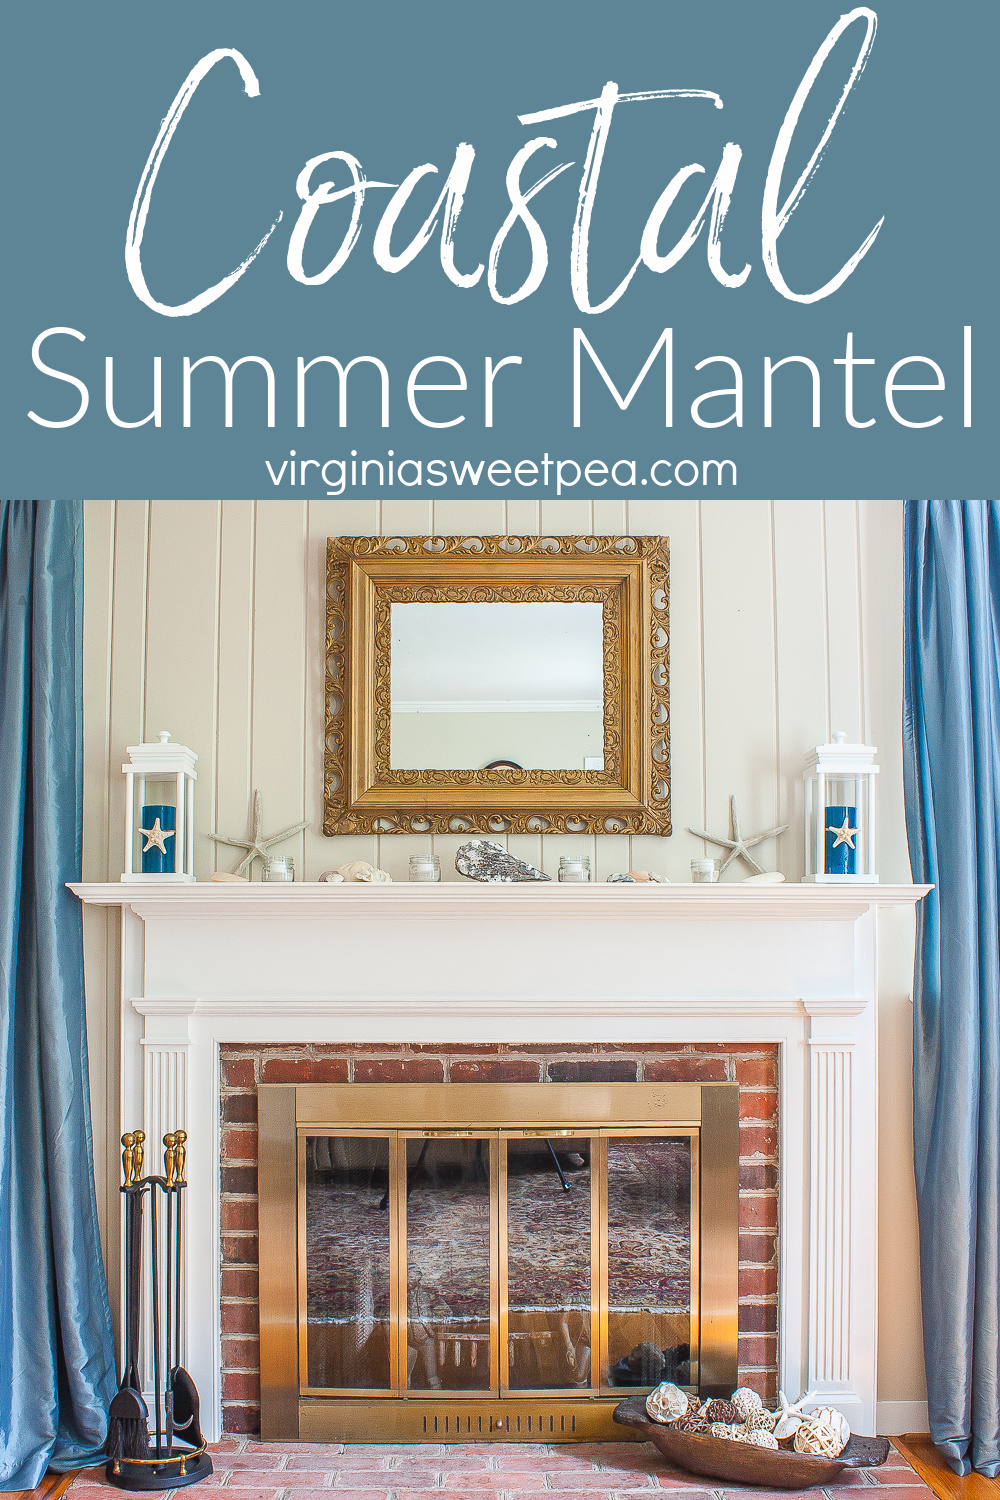 Coastal Themed summer mantel with a lantern holding a blue candle with a starfish tied to it, starfish, shells, coral, and small jars filled with sand and white votive candles.